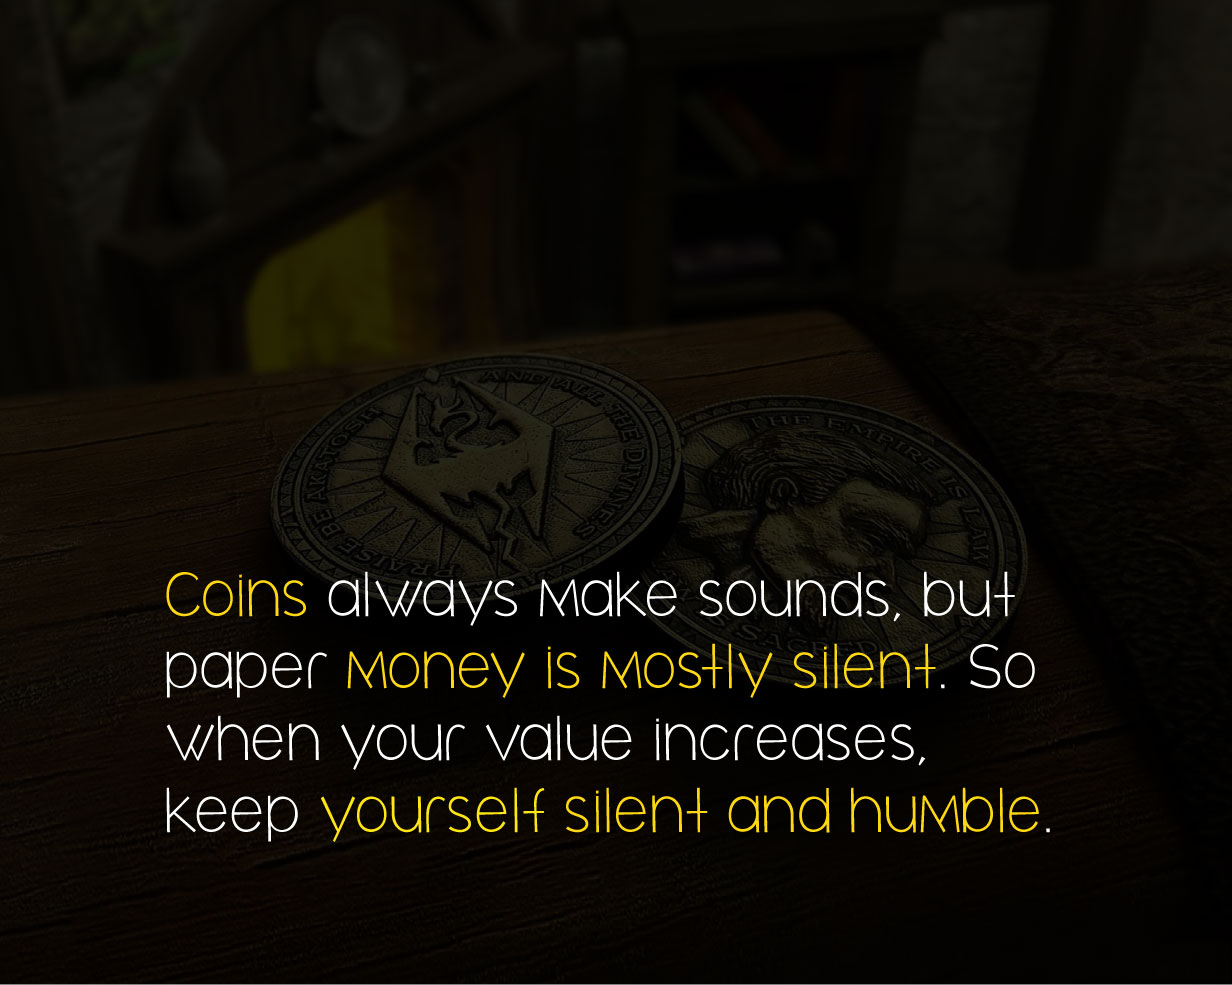 Coins always make sounds, but paper money is mostly silent. So when your value increases, keep yourself silent and humble.